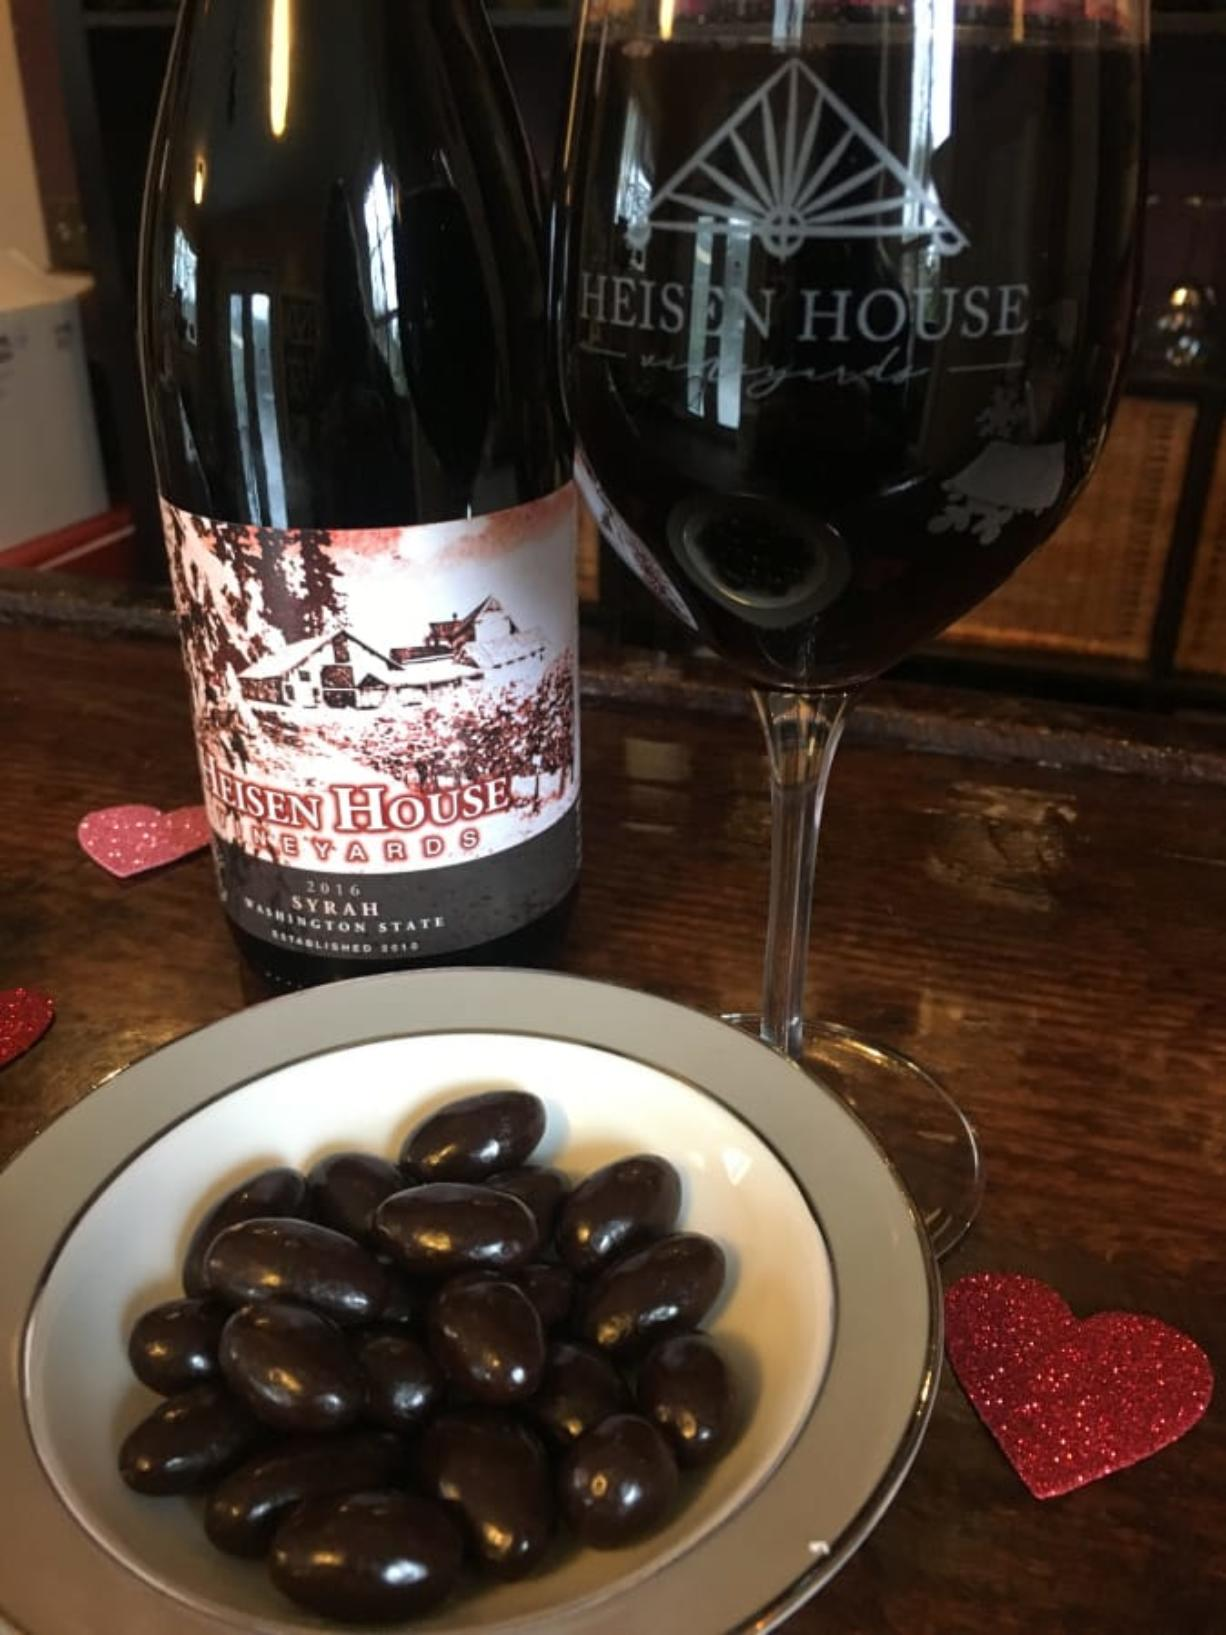 Heisen House is participating in the SW Washington Winery Association's Chocolate and Wine Weekend Tour Feb. 14-16. (Contributed photo)